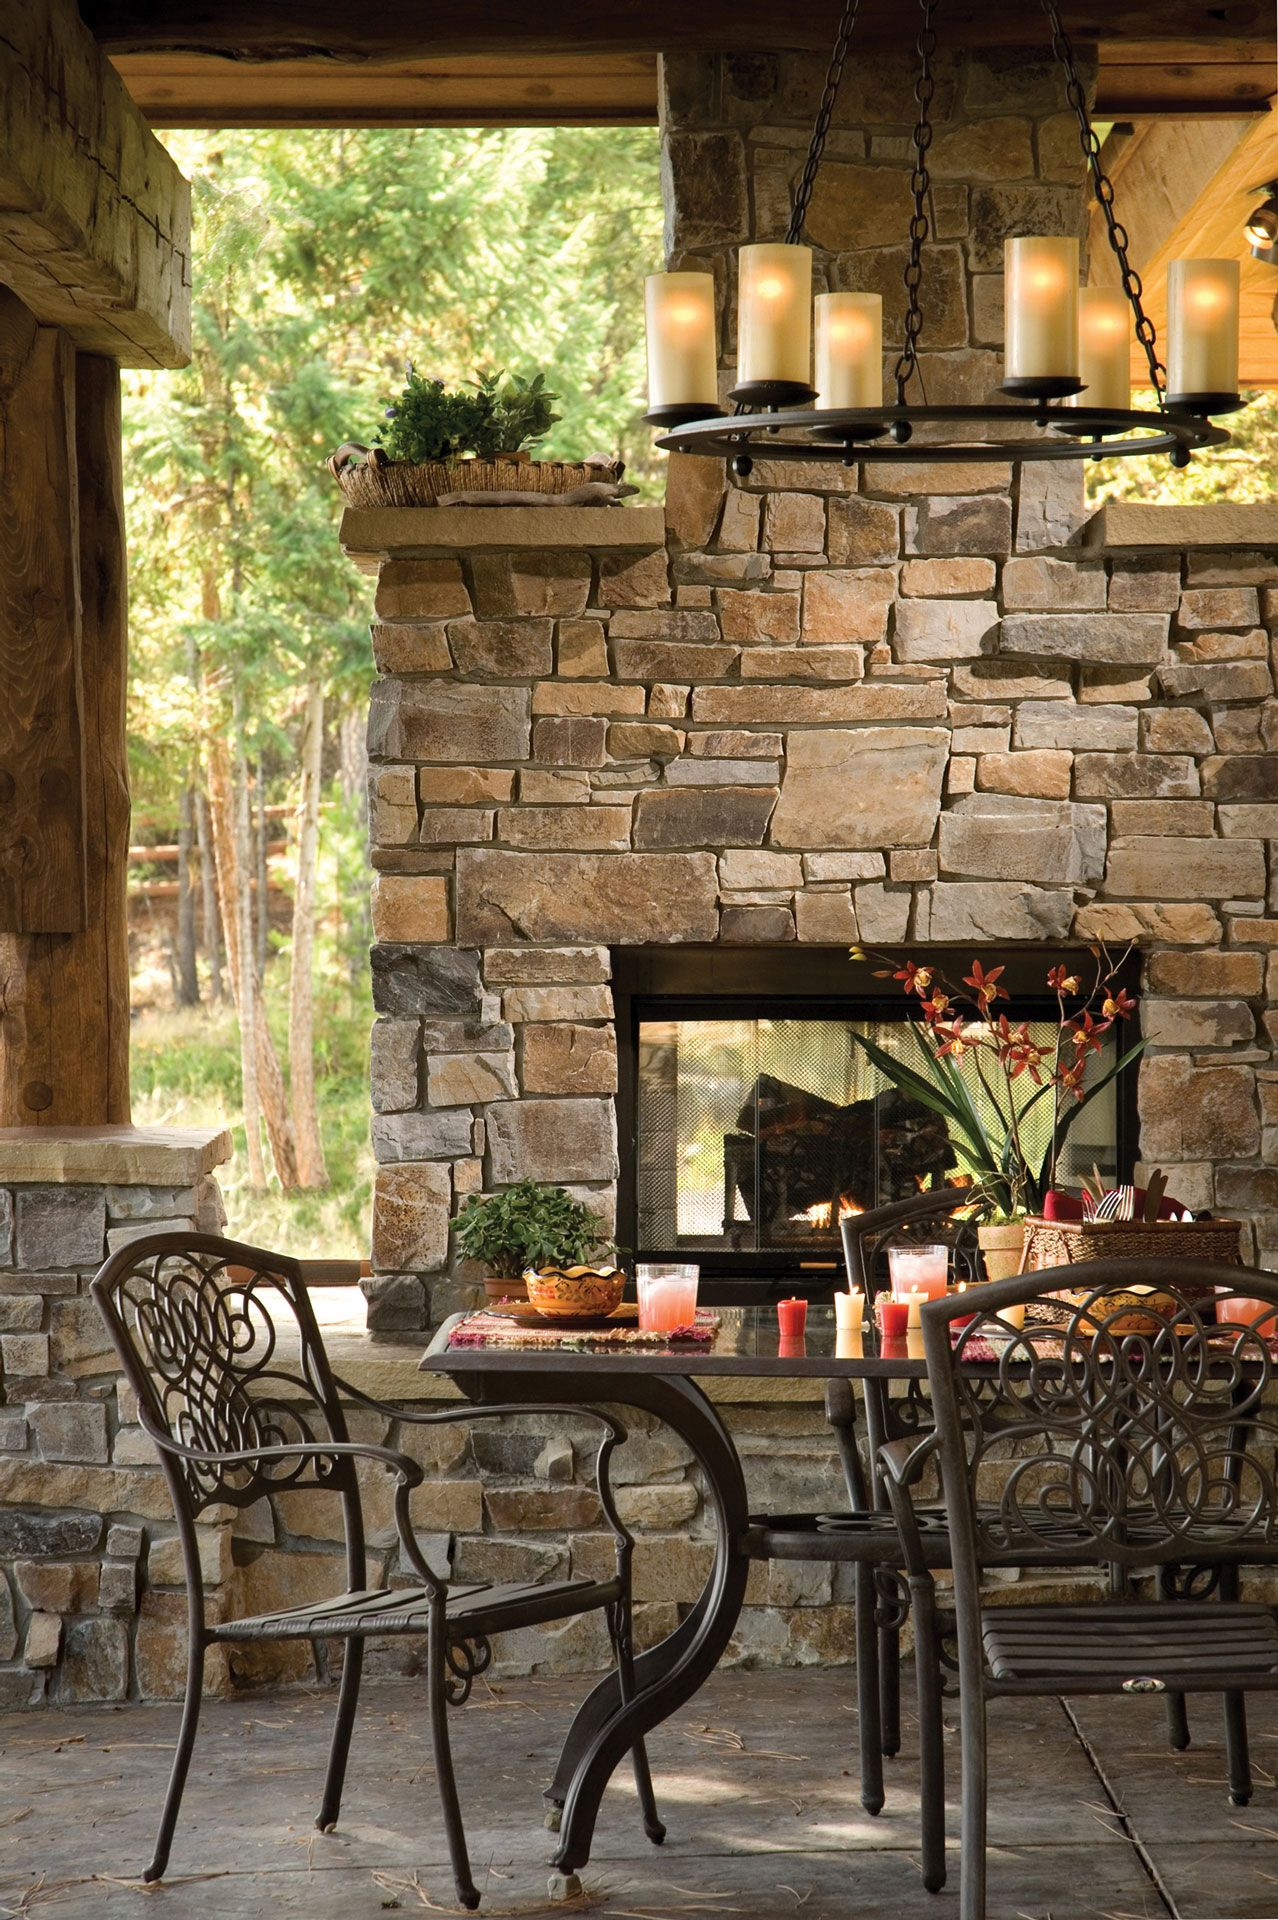 Castle Rock Ledge Full Thickness | Outdoor fireplace ... on Rock And Stone Outdoor Living id=40186